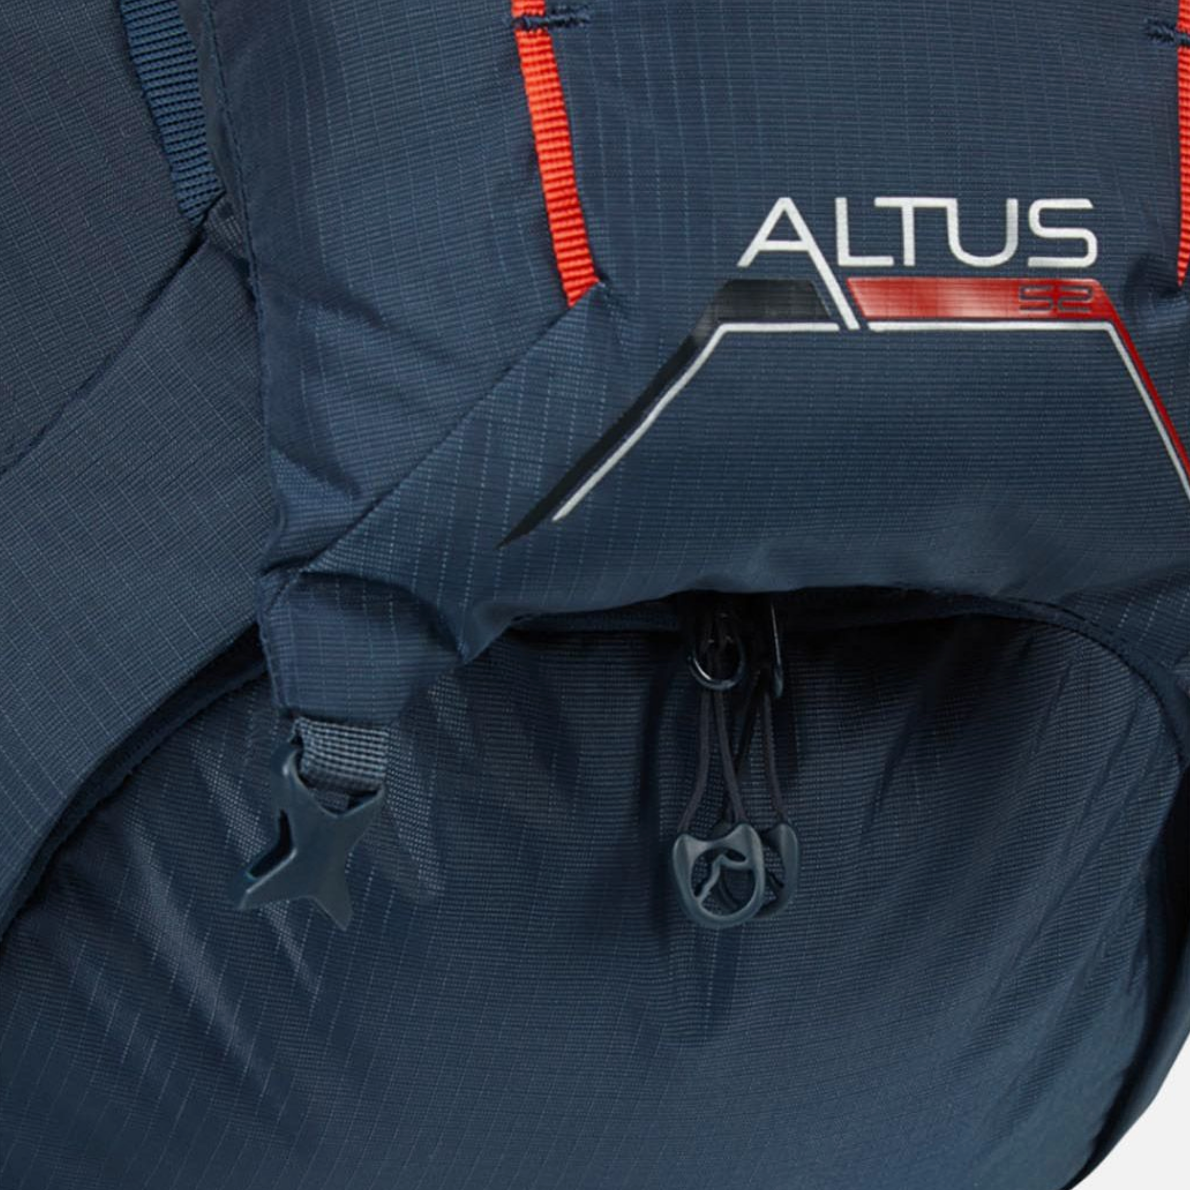 Lowe Alpine-Altus 42:47-Backpacking Pack-Gearaholic.com.sg